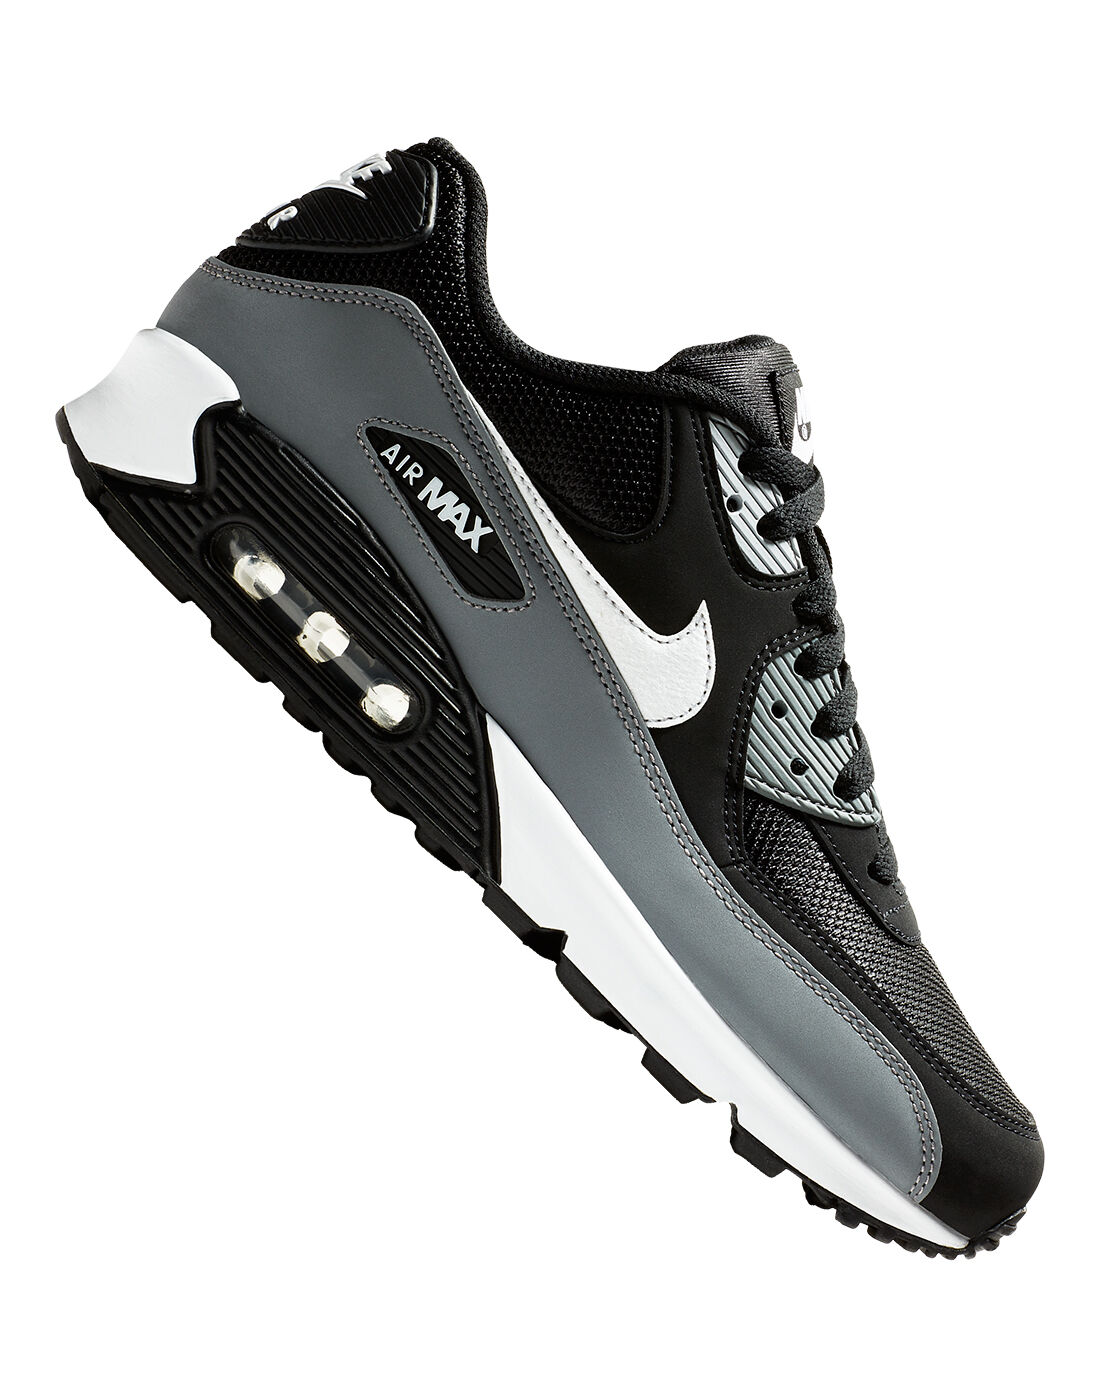 Men's Black & Grey Nike Air Max 90 Essential | Life Style Sports